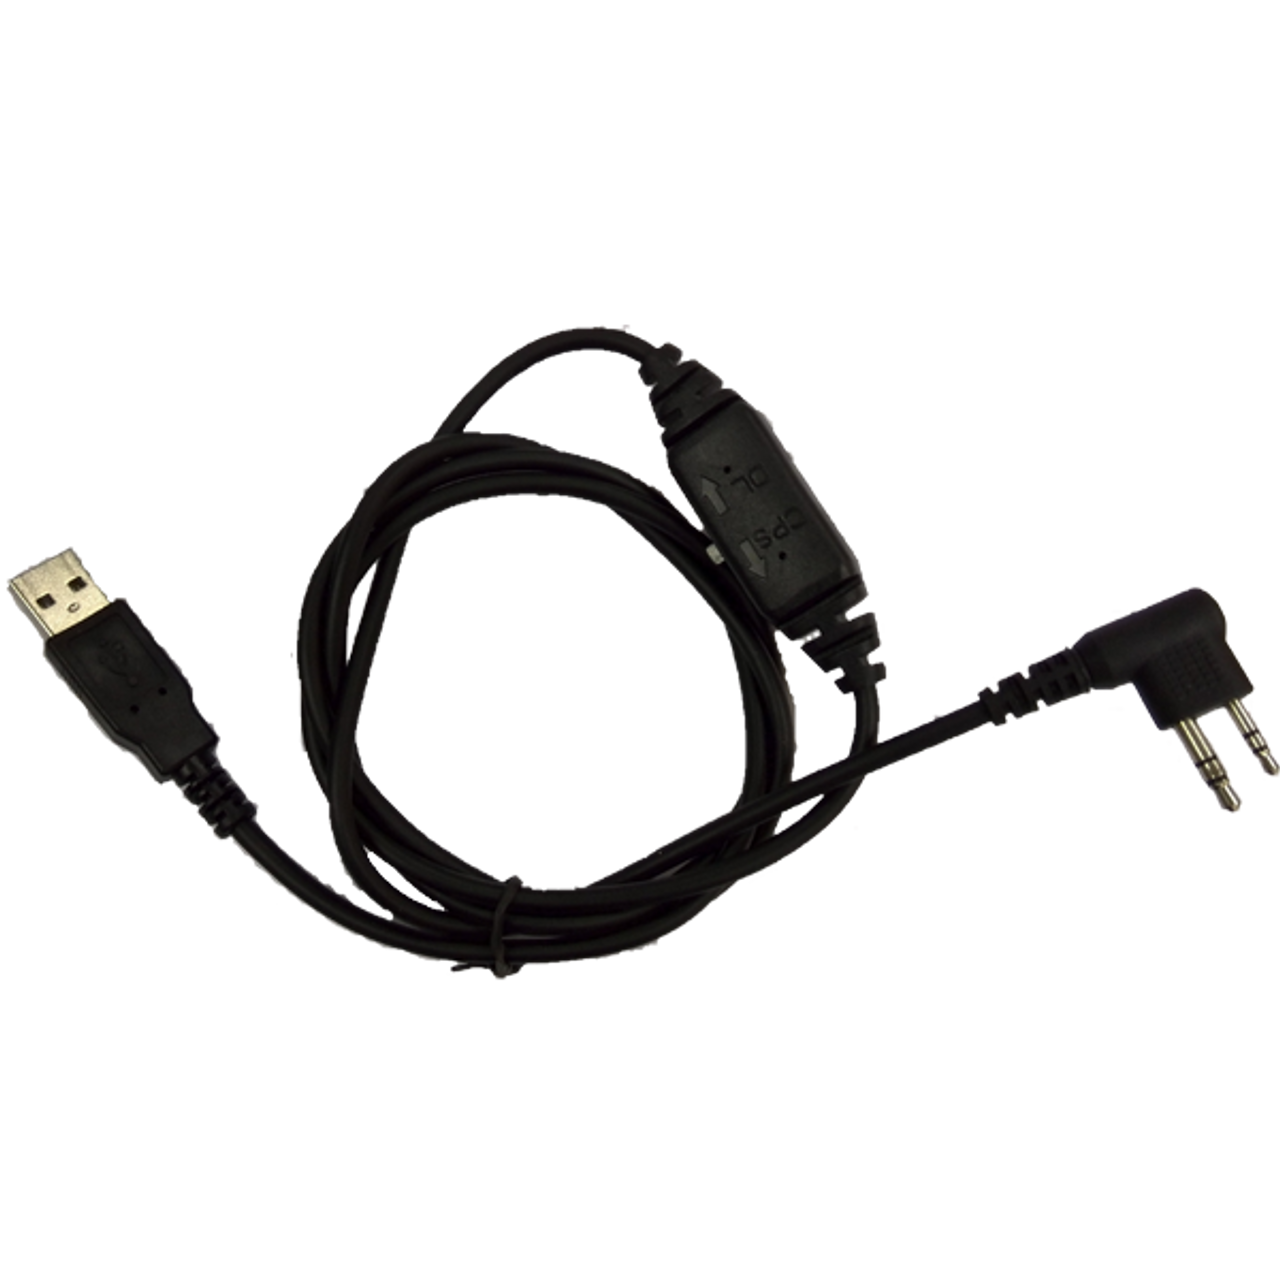 Hytera PC63 Programming Cable for PD5i Series Two Way Radios